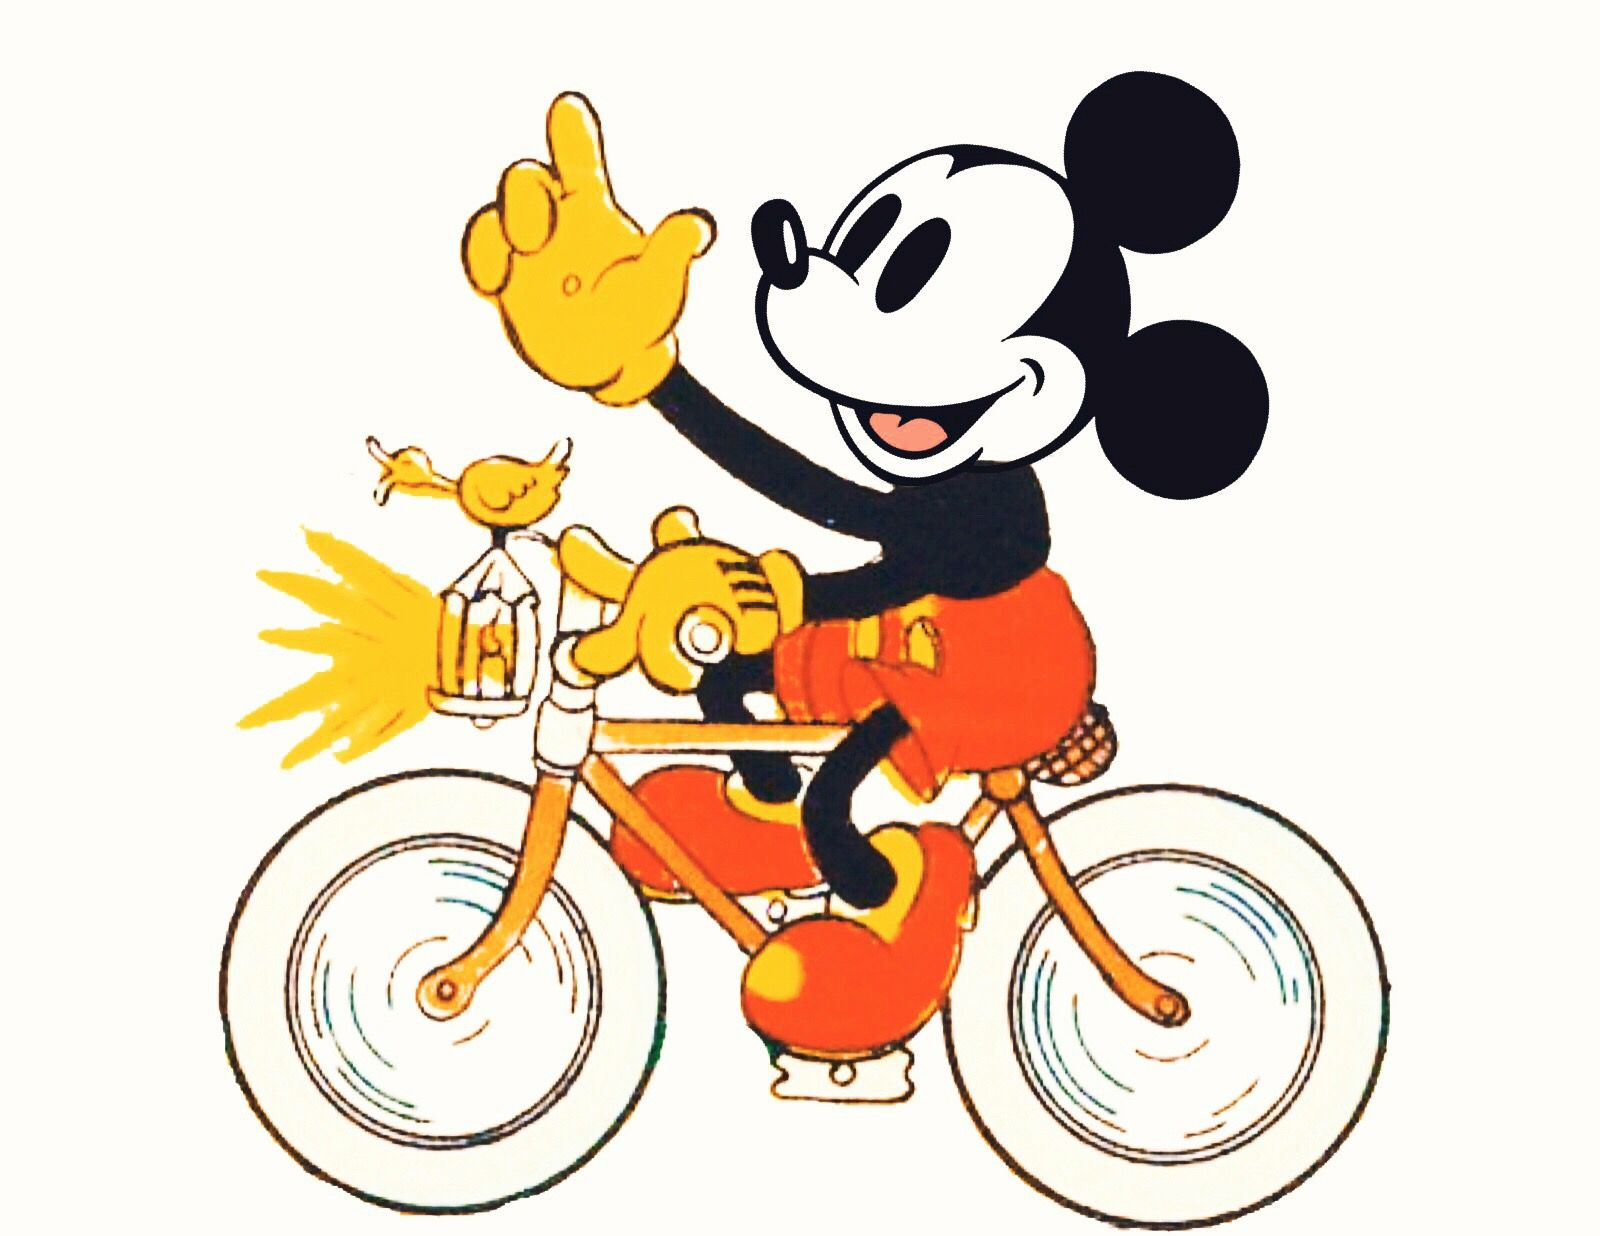 Mice clipart bike. Mickey mouse in favorite